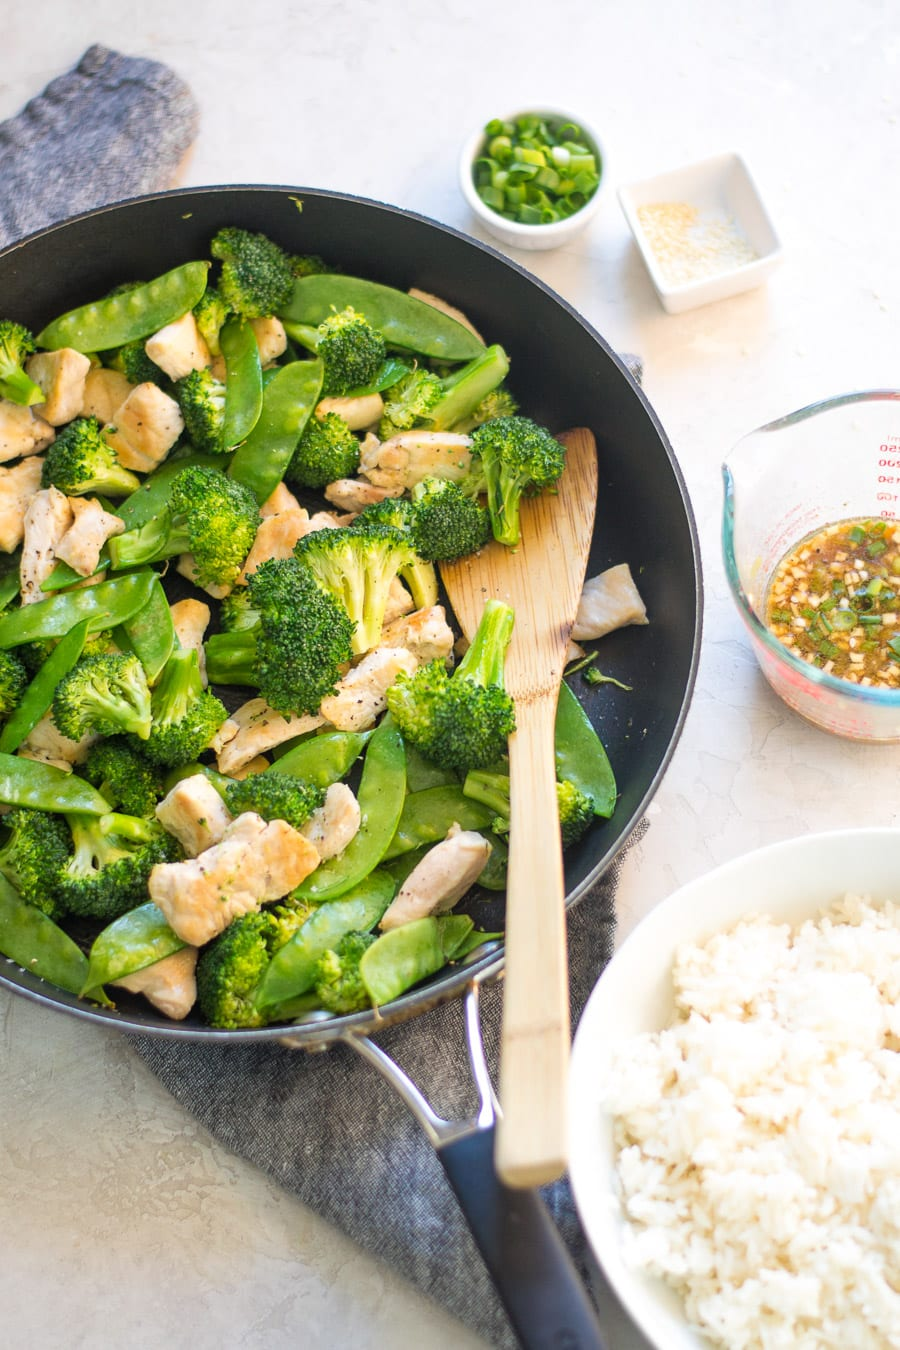 Chicken and Broccoli Stir Fry Ingredients | Sarcastic Cooking